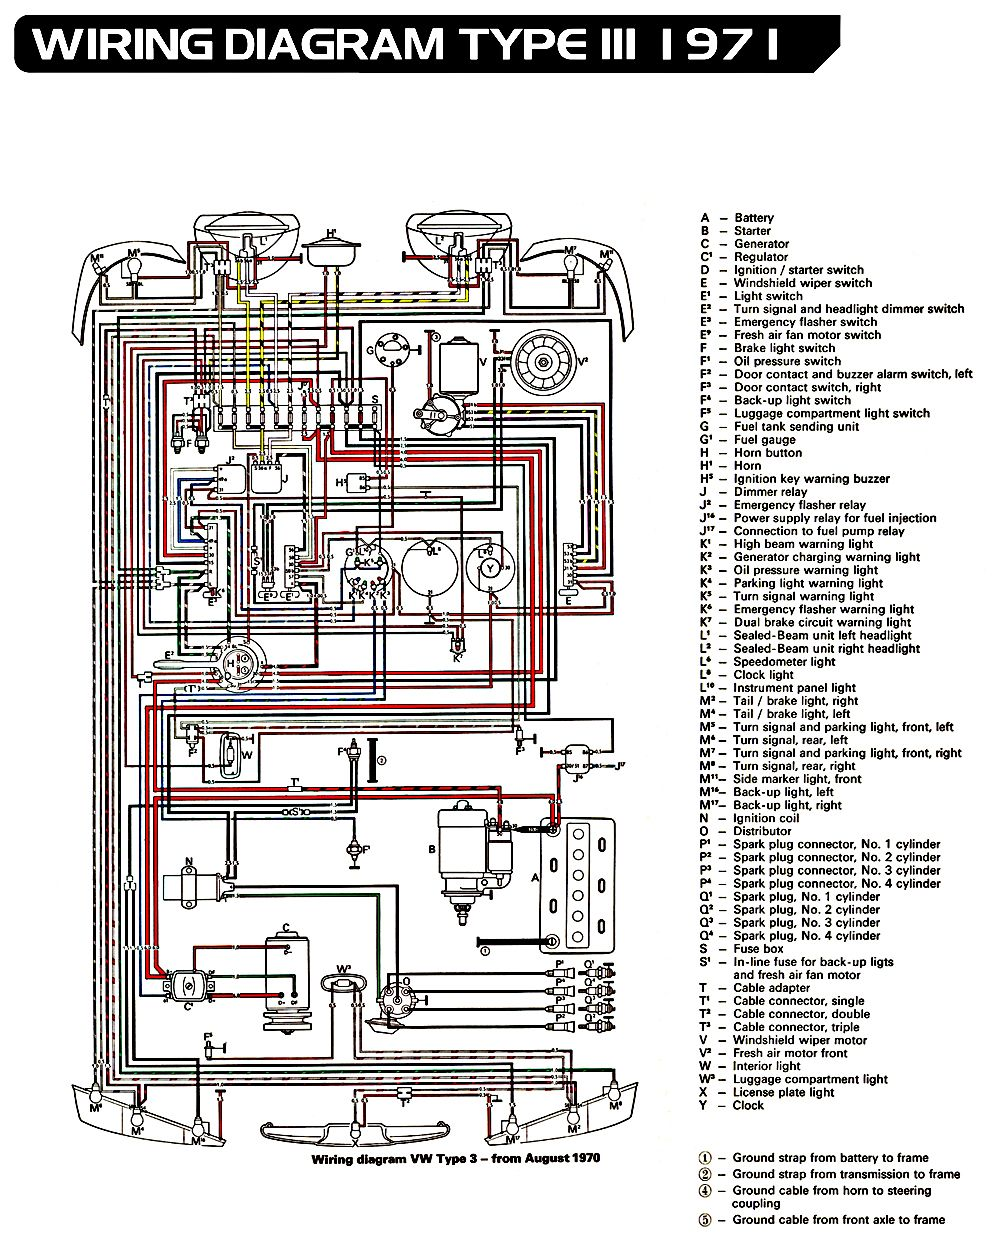 1971 type 3 vw wiring diagram so simple compared to a modern ecu rh pinterest com [ 1000 x 1252 Pixel ]